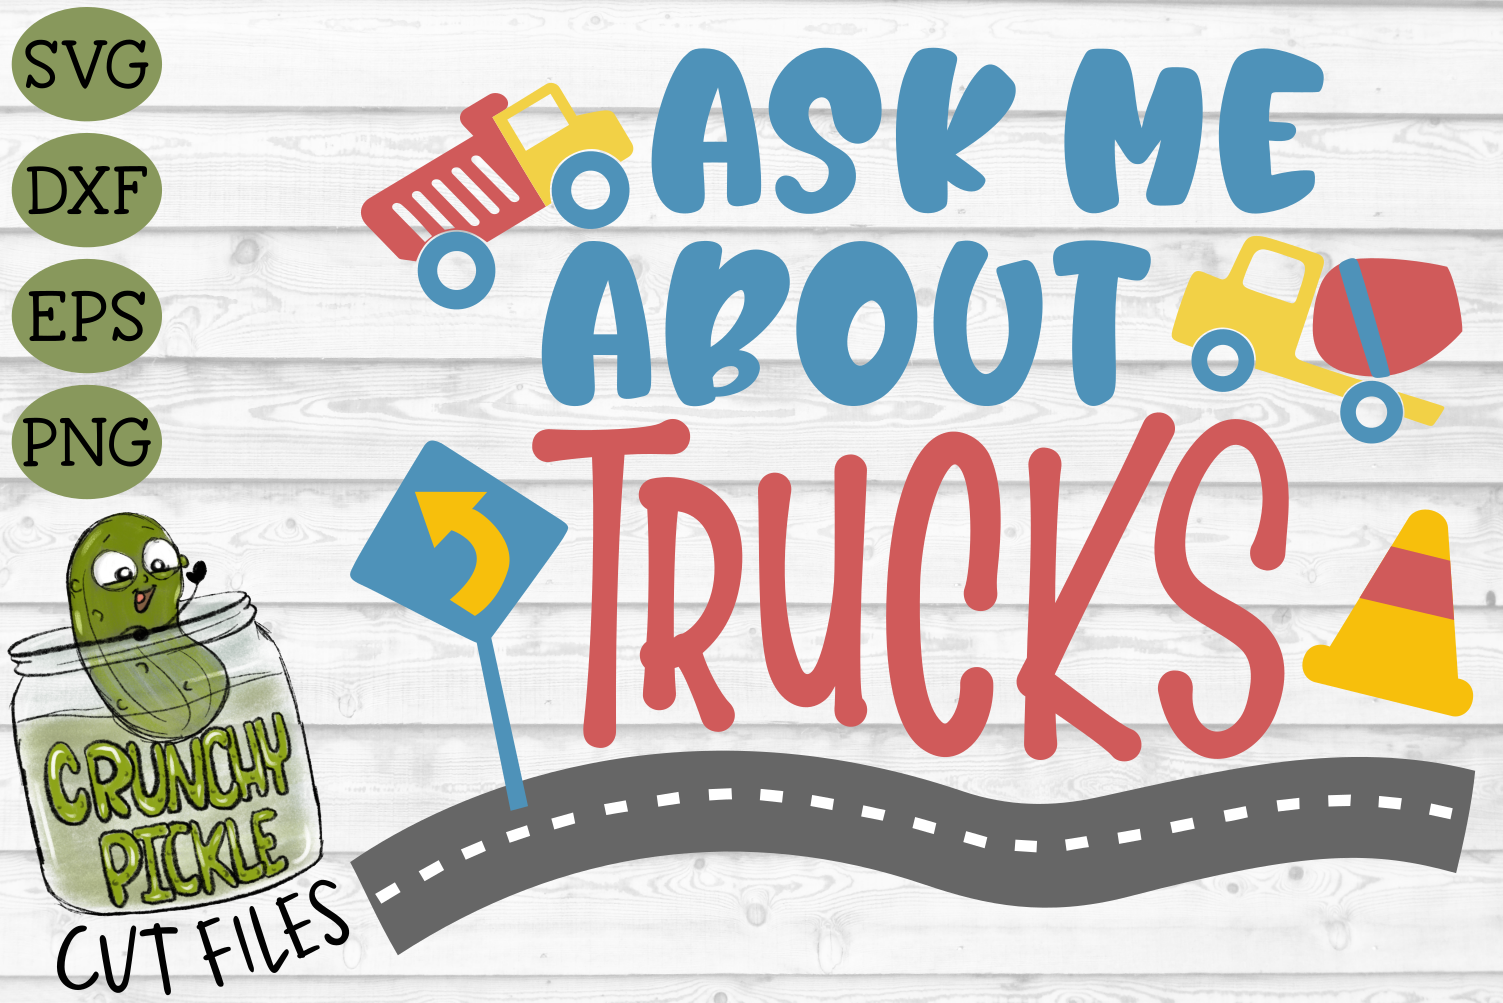 Ask Me About Trucks SVG example image 2